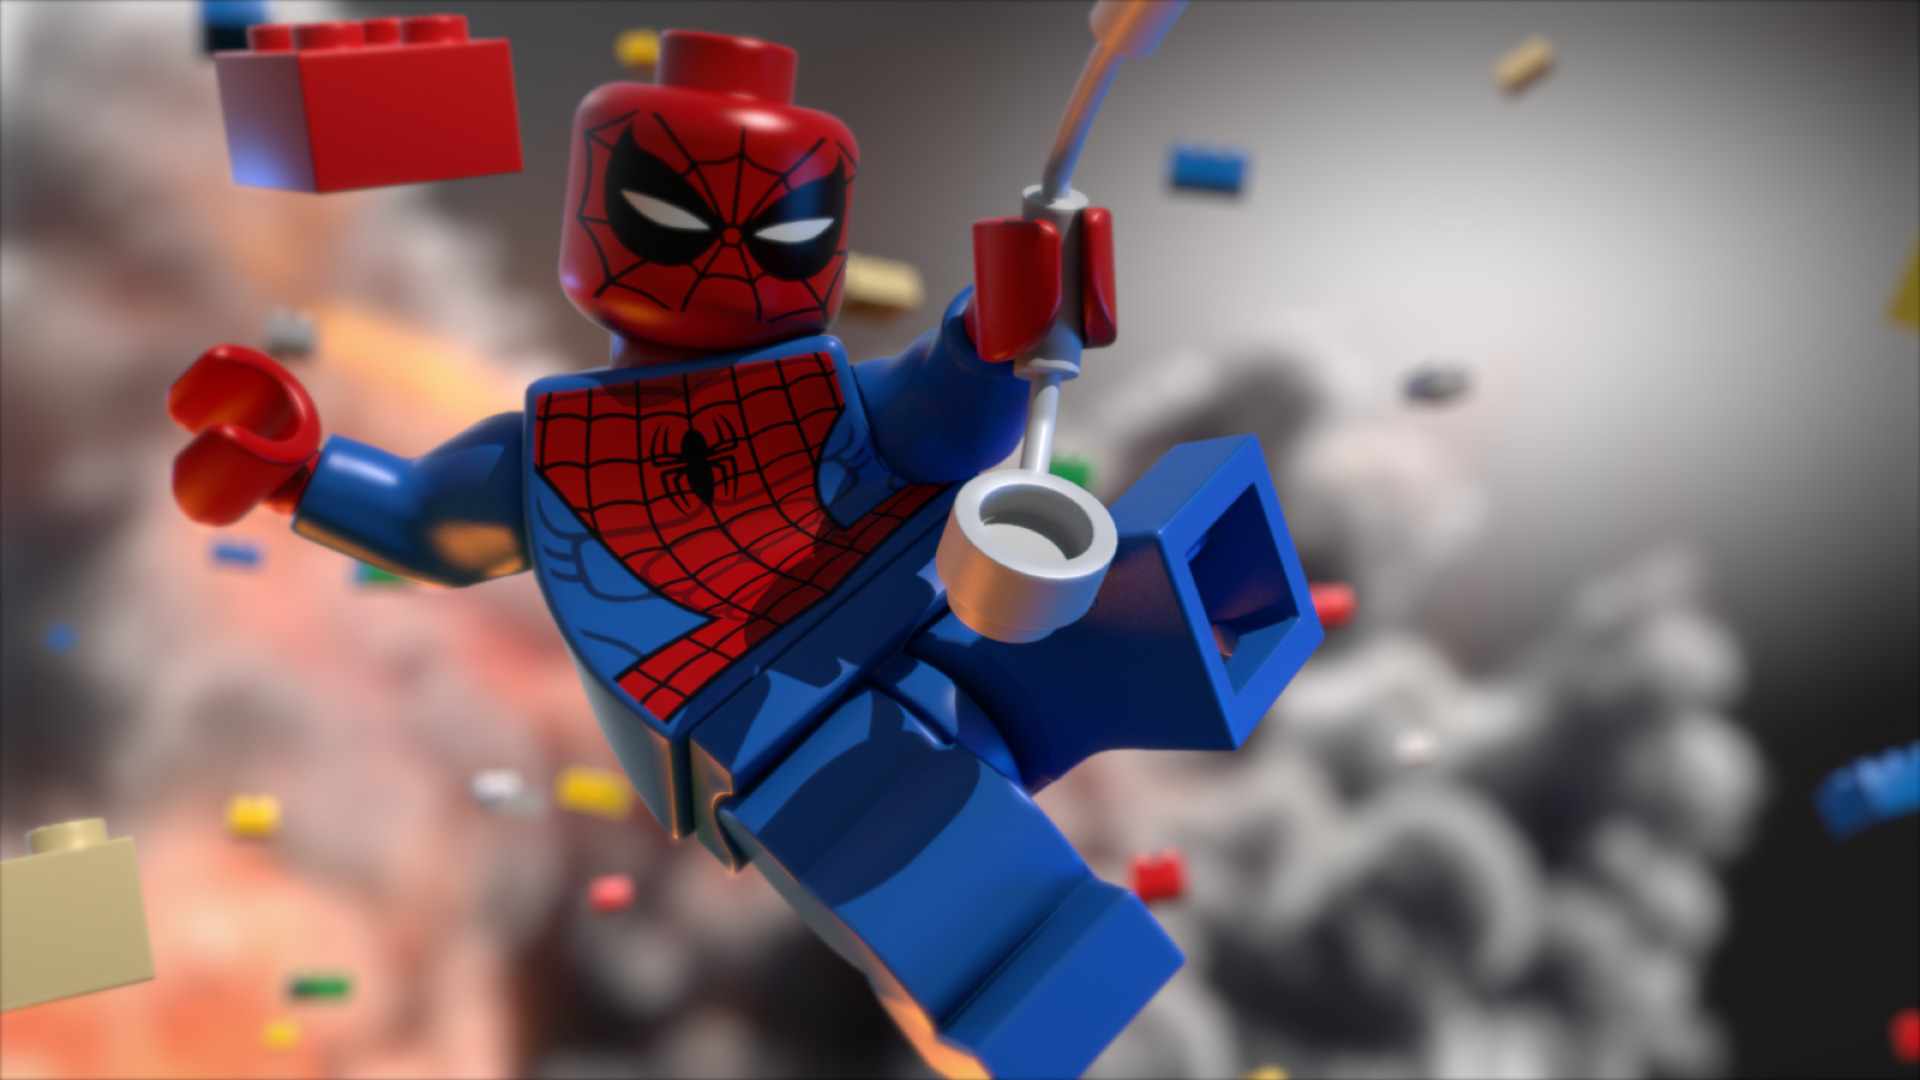 Cute Apple Logo Wallpaper Lego Spiderman Hd Cartoons 4k Wallpapers Images